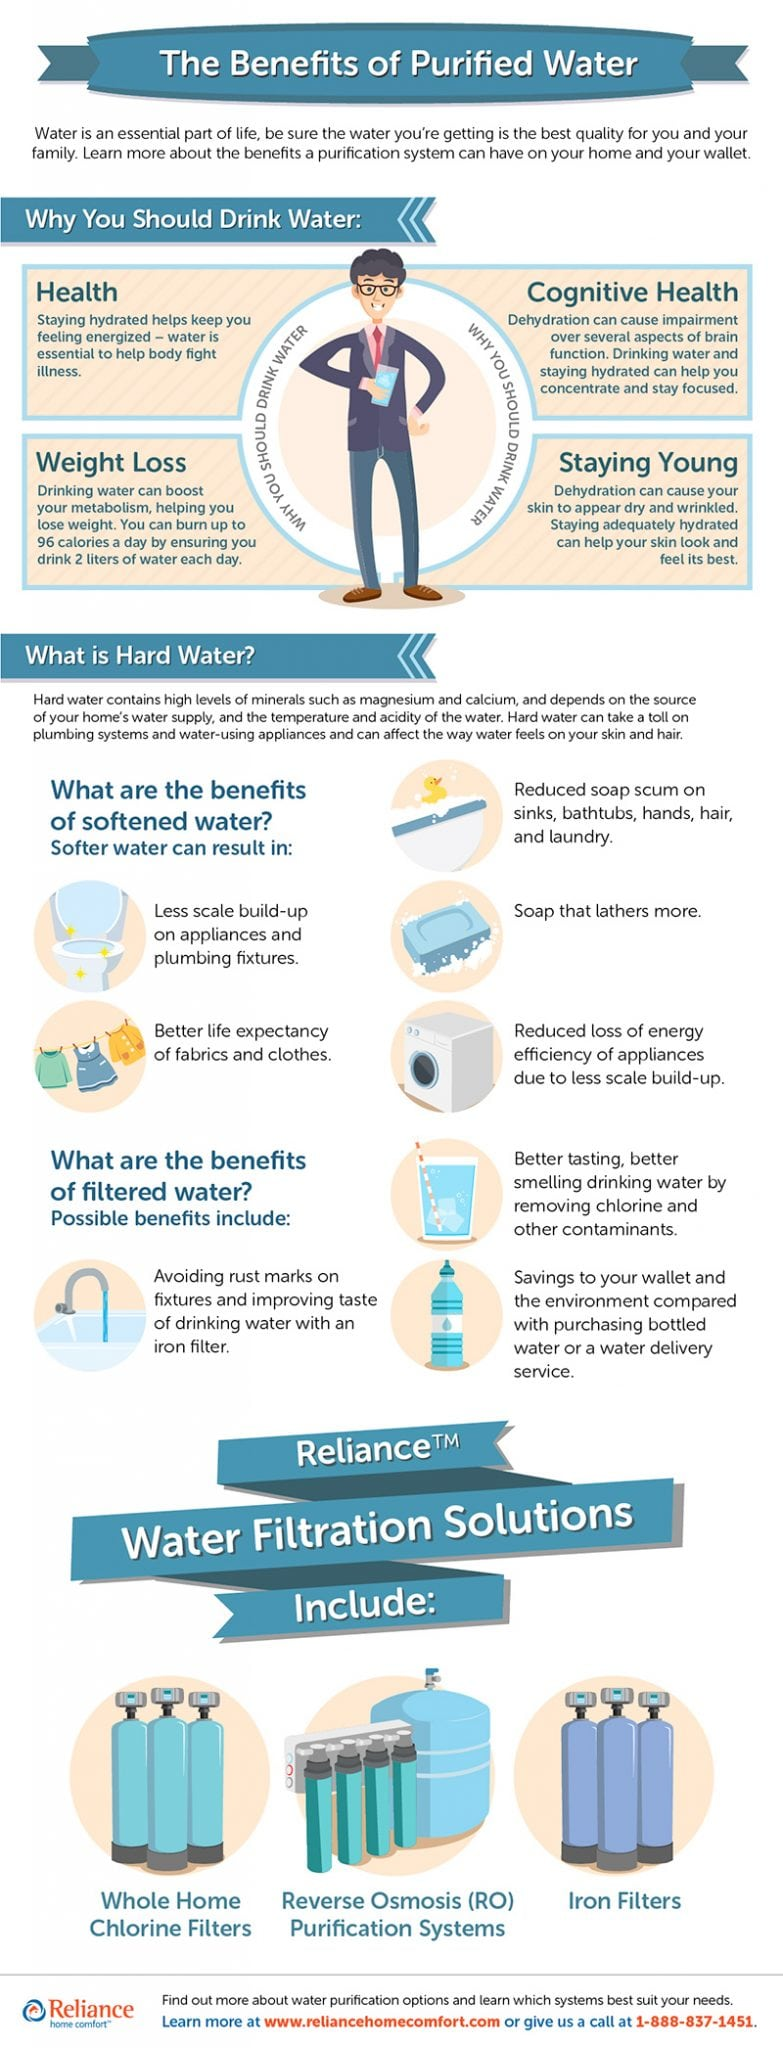 The Benefits of Purified Water Infographic Infographic